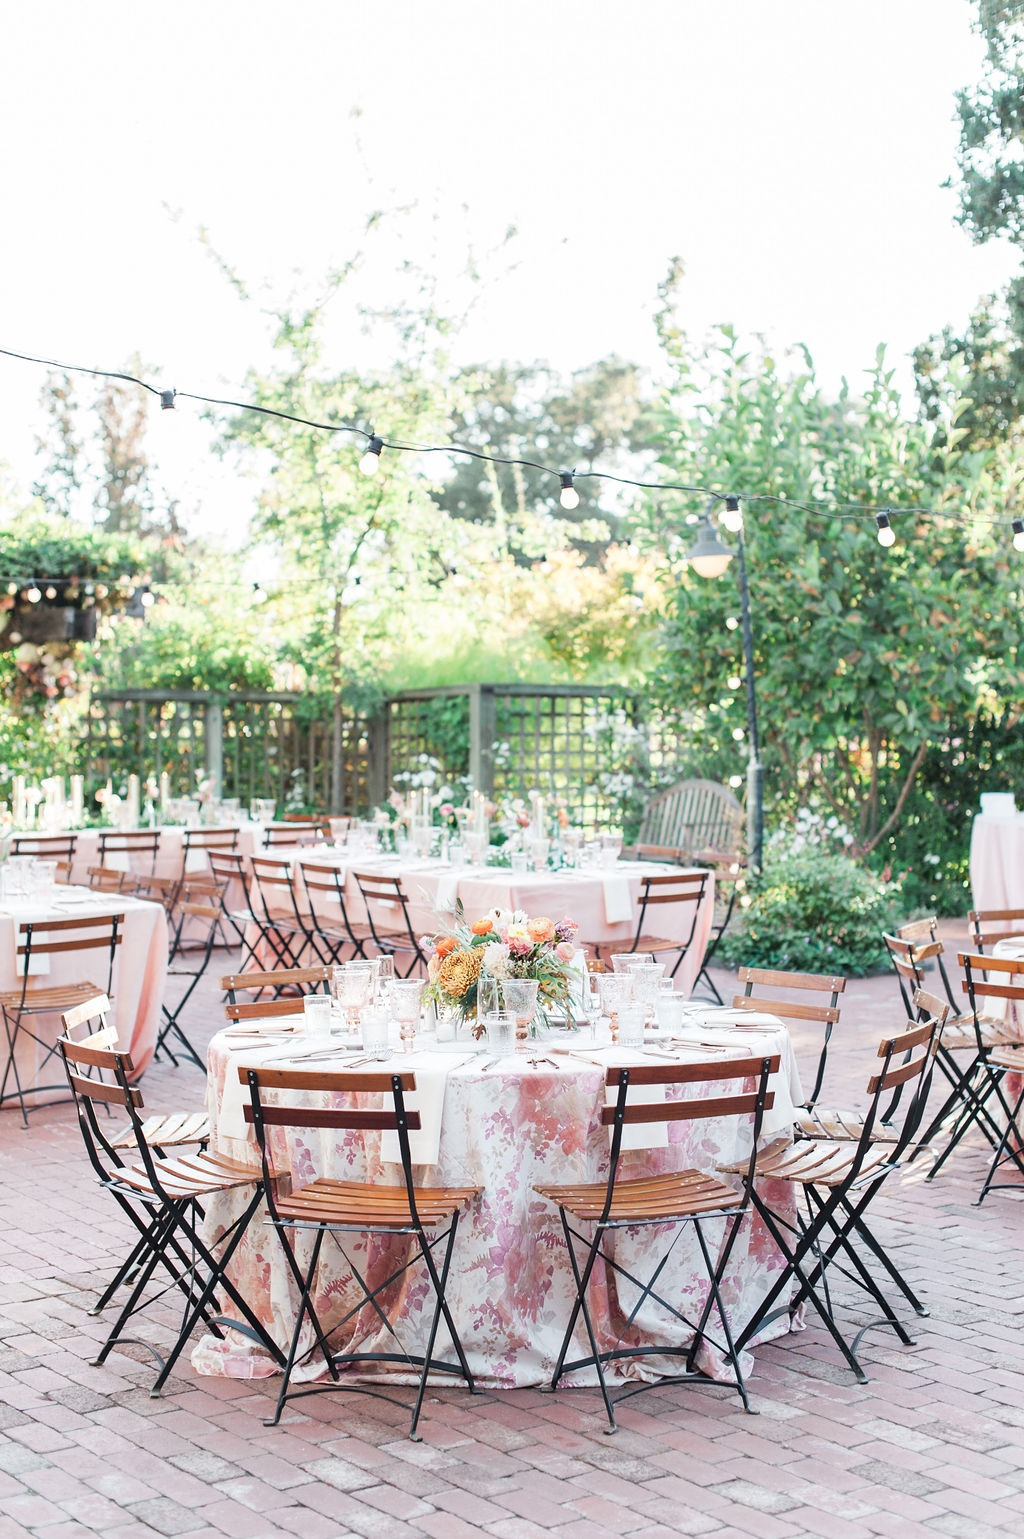 Wedding reception at Los Altos History Museum. Peach, Copper, Olive. Mix of rounds and queens. Fall wedding inspiration.